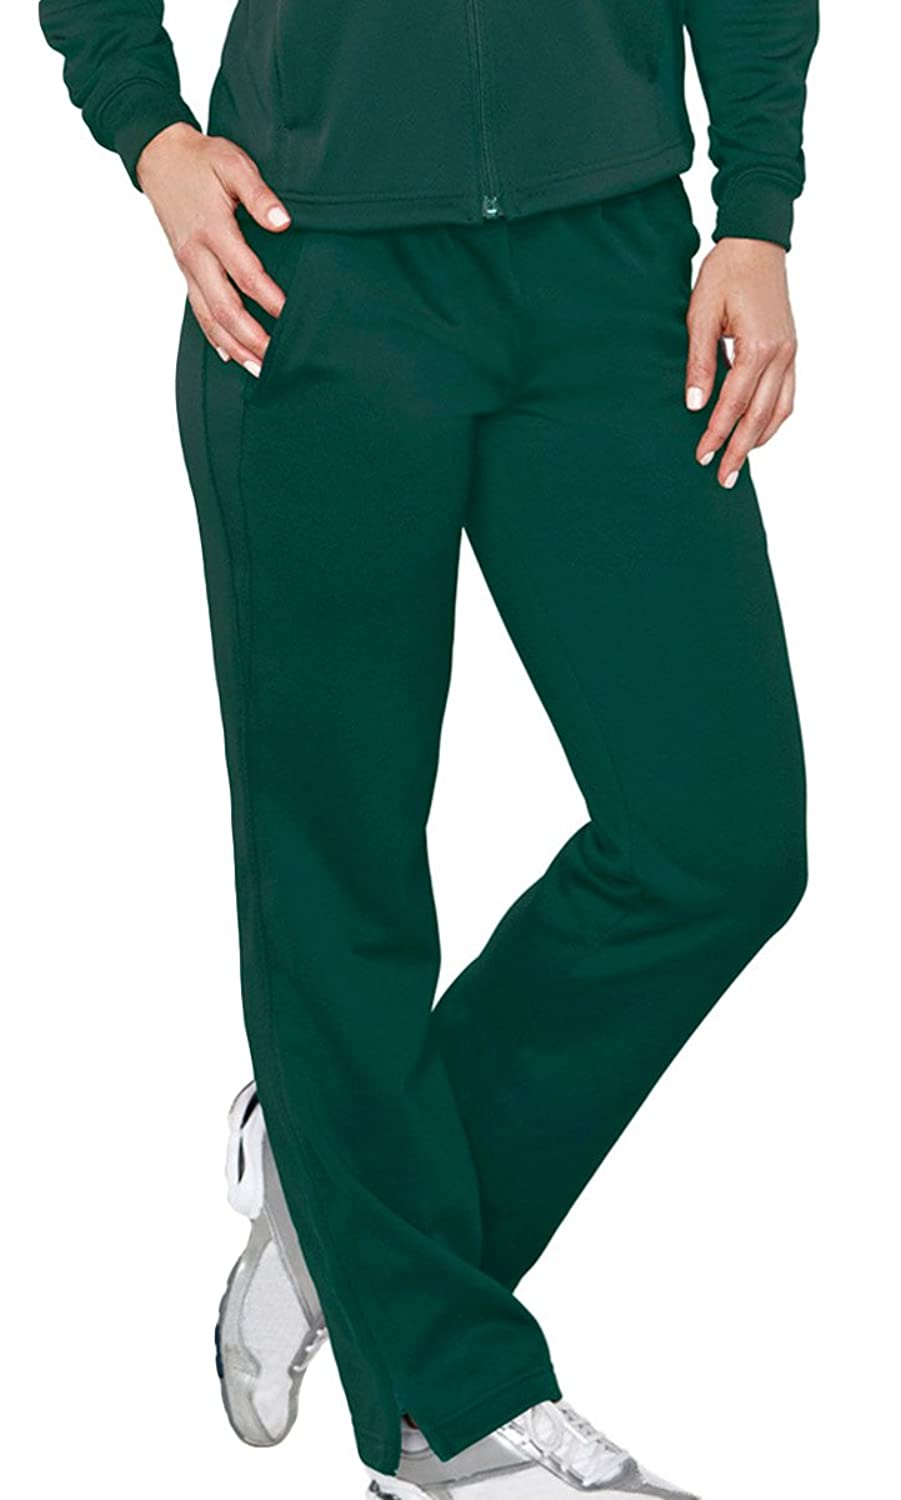 Women's Polyester Ultracool@ Performance Elastic Fleece Tornado Pant (7 Colors)